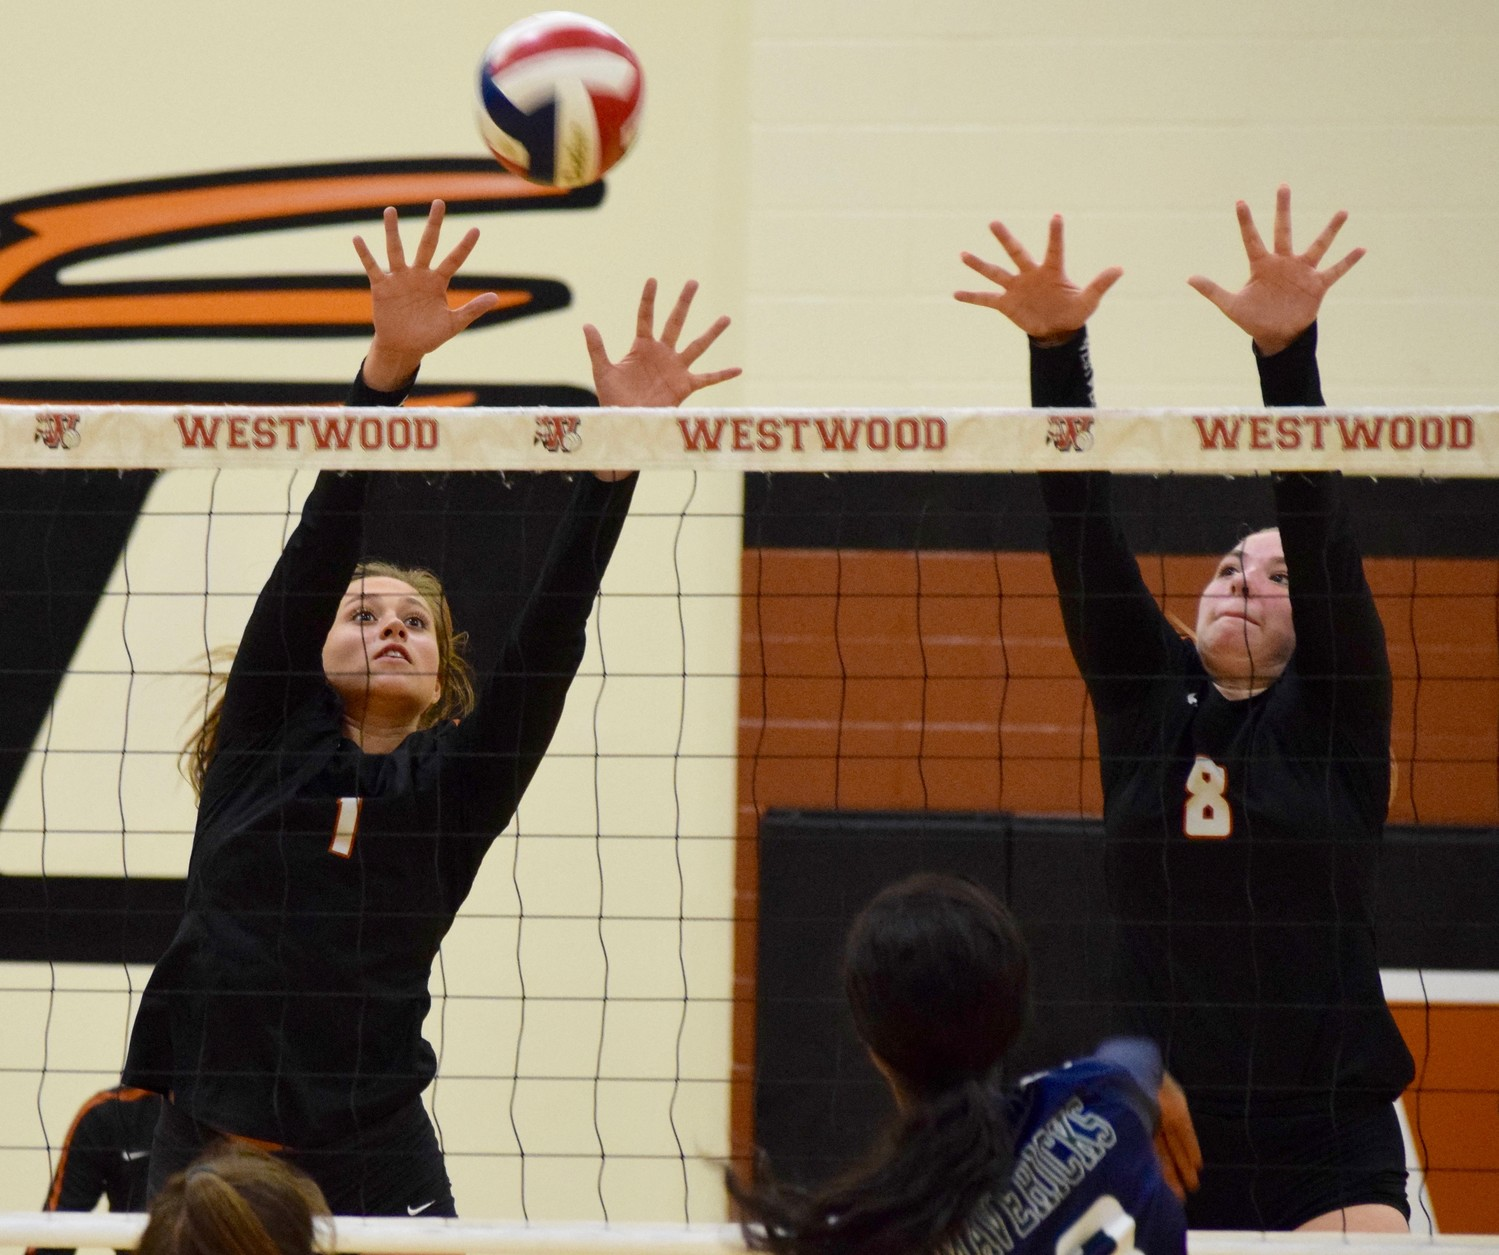 Abby Gregorczyk, left, Caroline Suter and Westwood beat McNeil 3-1 (25-21, 25-17, 19-25, 28-26) on Tuesday night to remain one of two teams still undefeated in District 13-6A play.